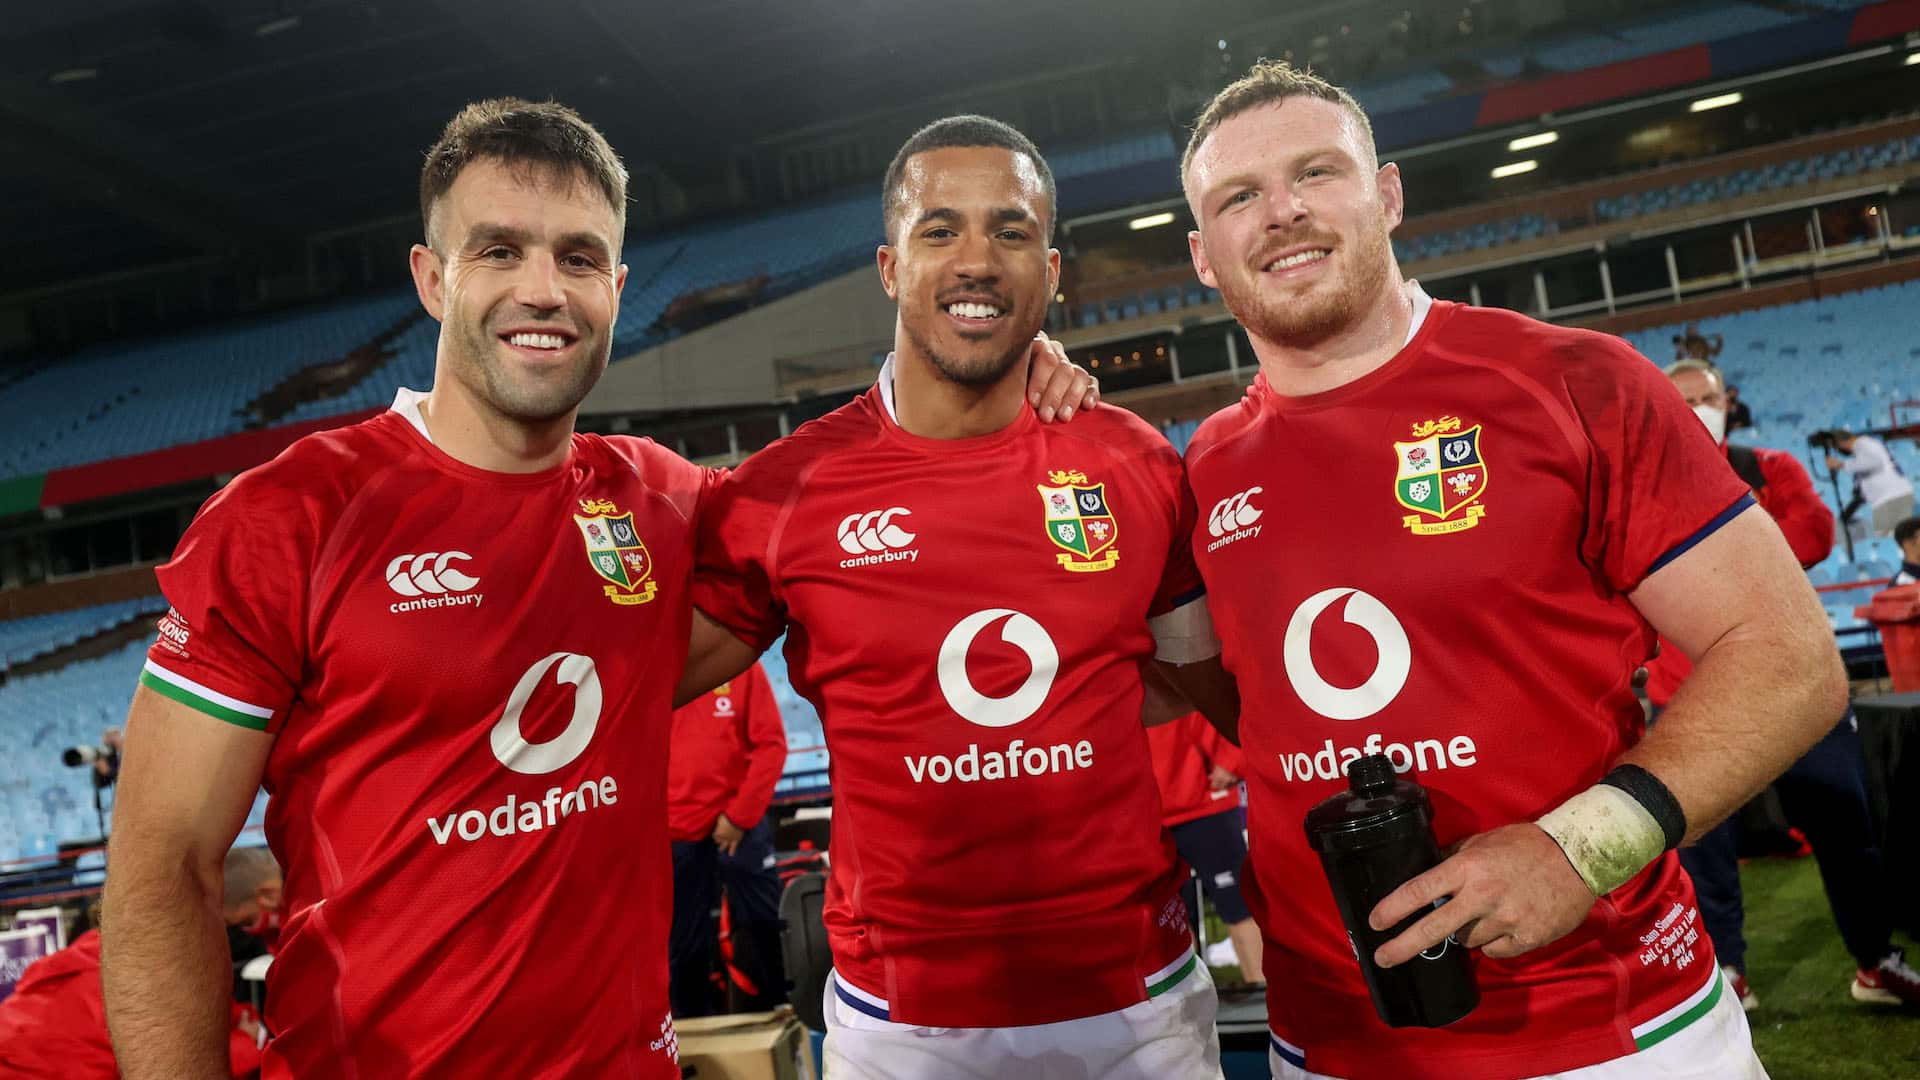 Conor Murray, Anthony Watson and Sam Simmonds celebrate after the game